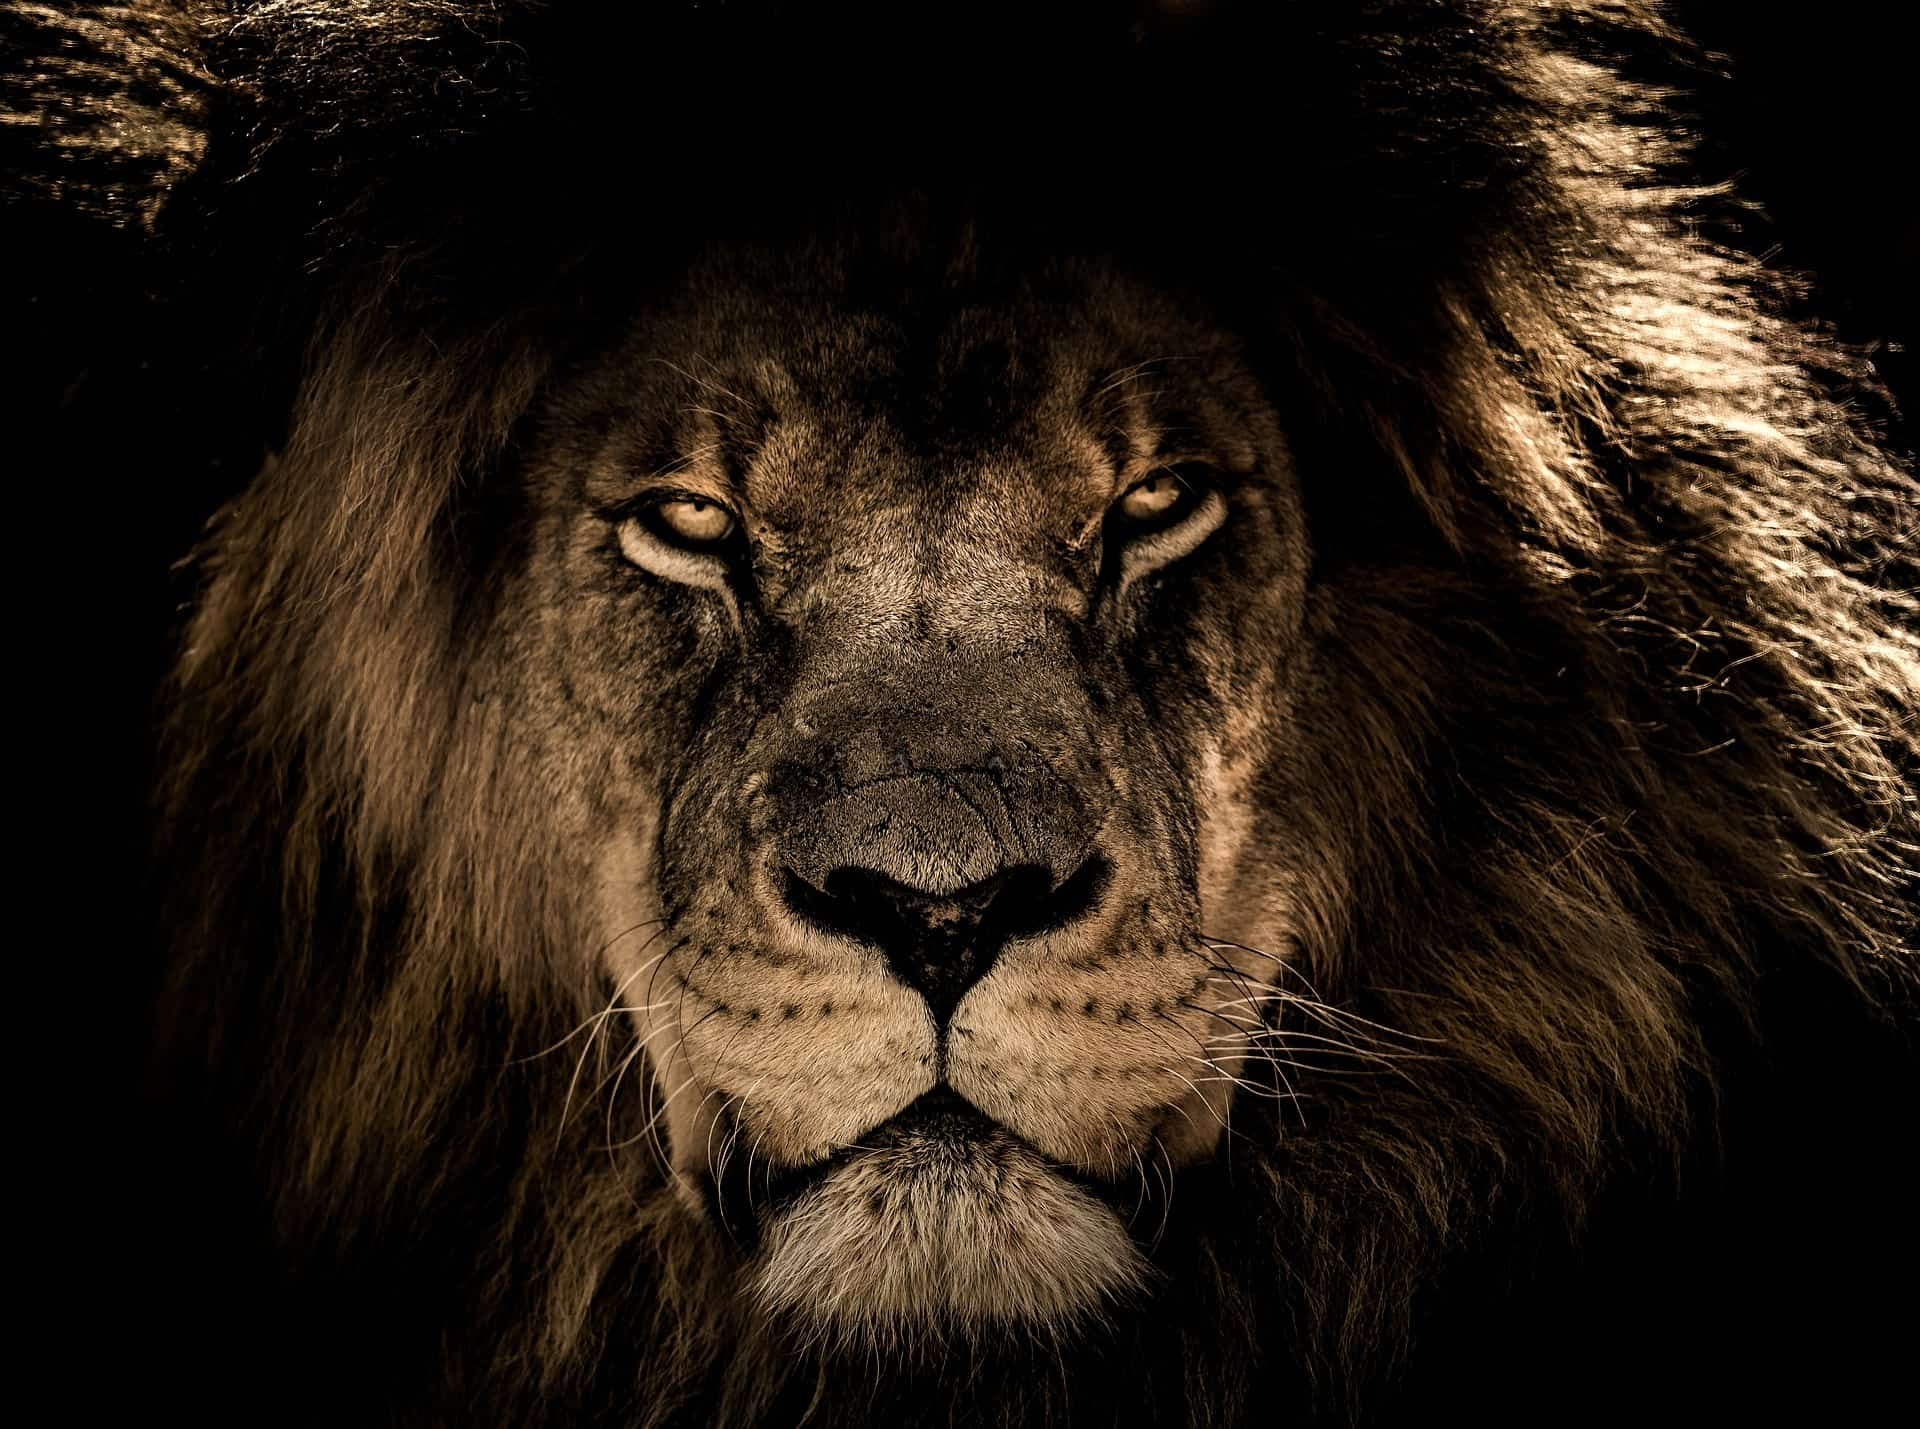 Compress Large Amazing Images Retain Quality On Twitter Lion Images African Lion Beautiful Lion